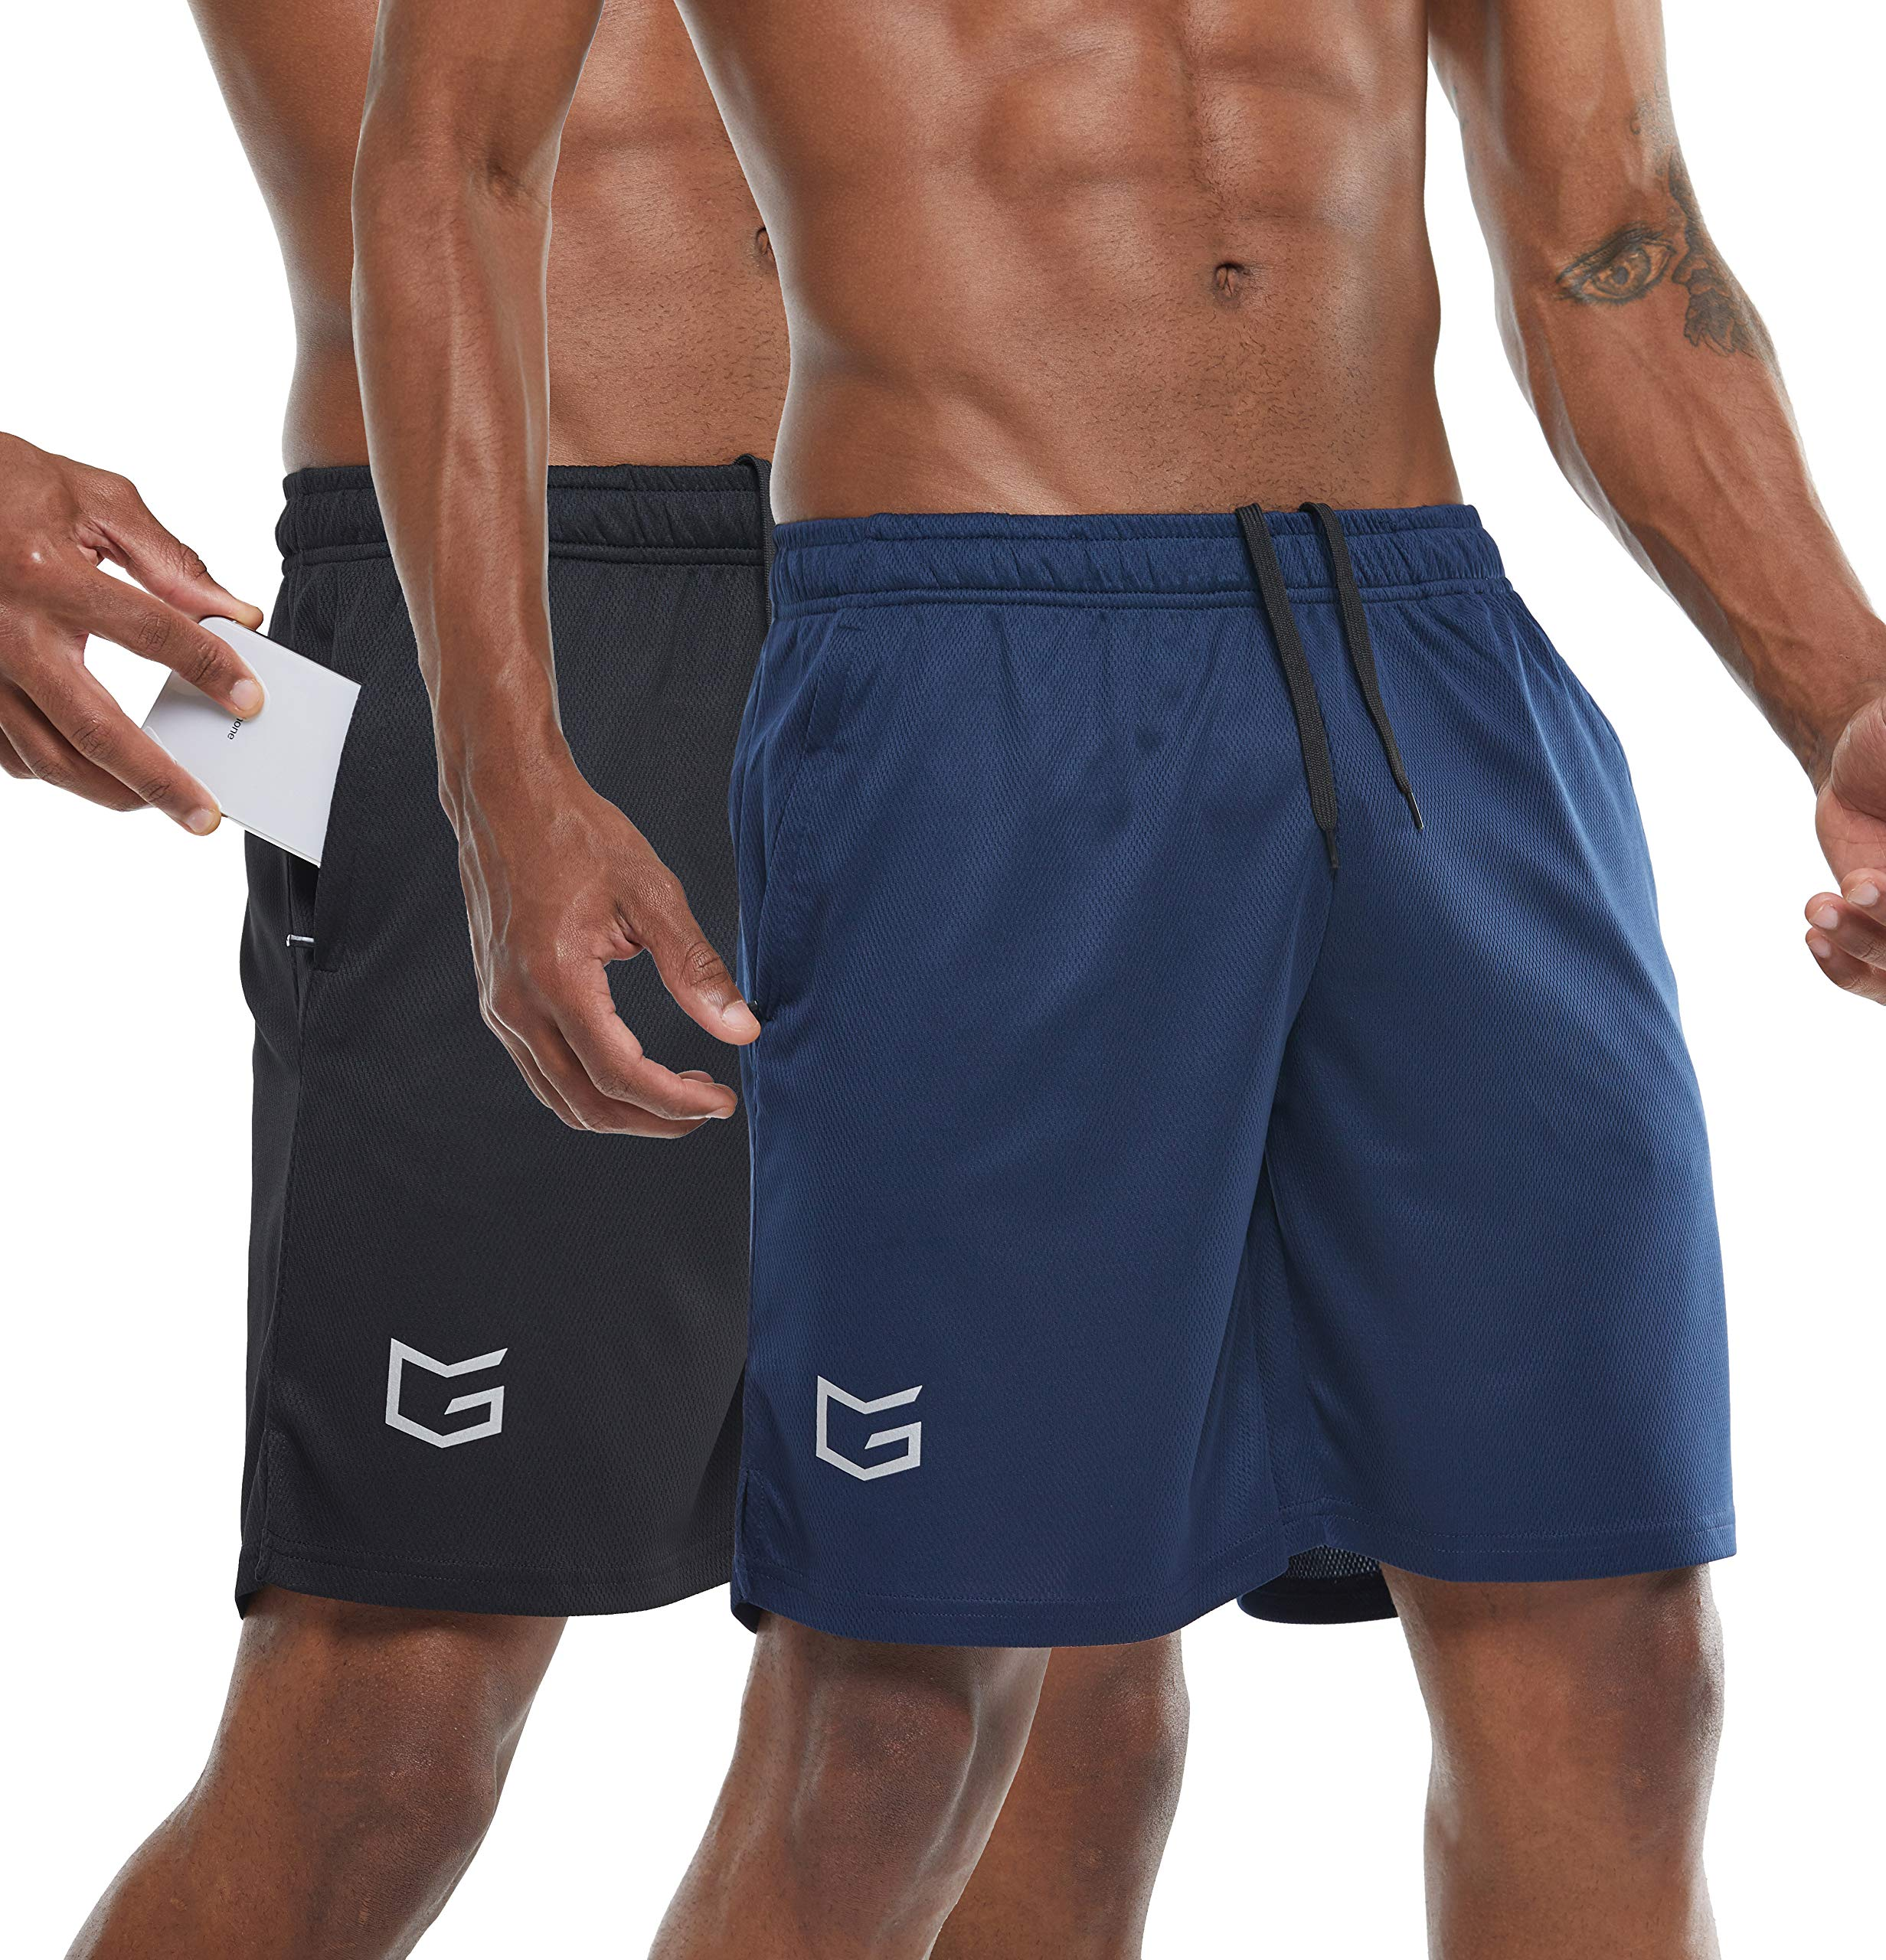 G Gradual Men's 7'' Workout Running Shorts Quick Dry Lightweight Gym Shorts with Zip Pockets (Navy Blue/Black, Small) by G Gradual